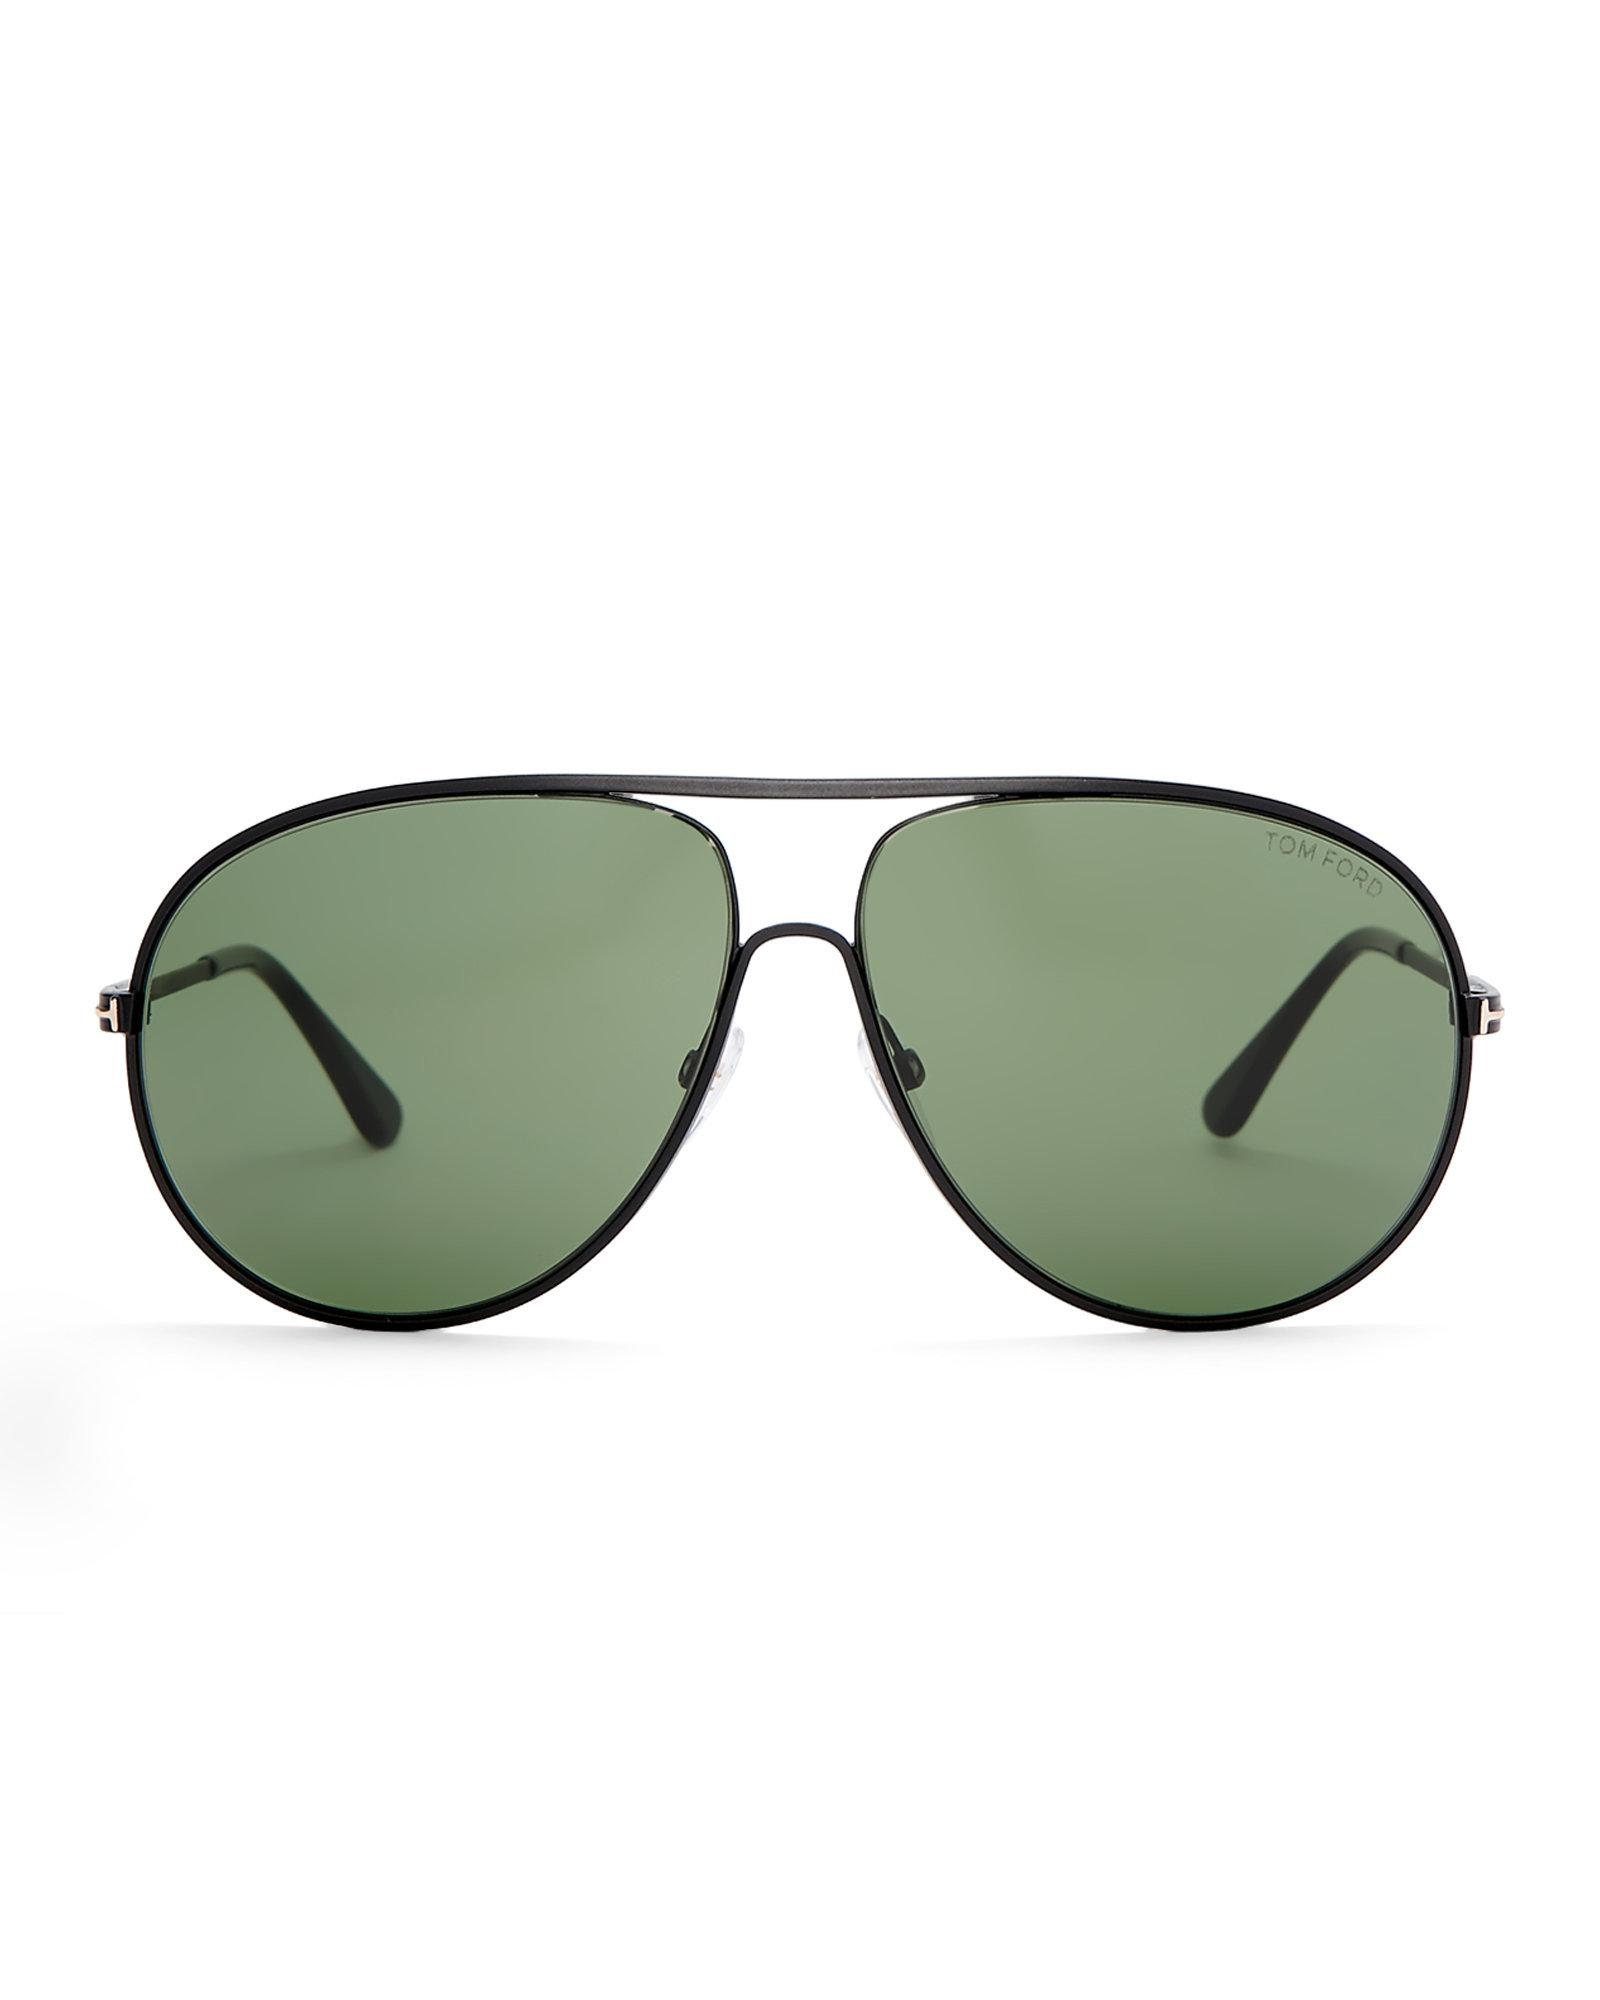 fec5db4f32f9b Lyst - Tom Ford Tf450 Black Cliff Aviator Sunglasses in Green